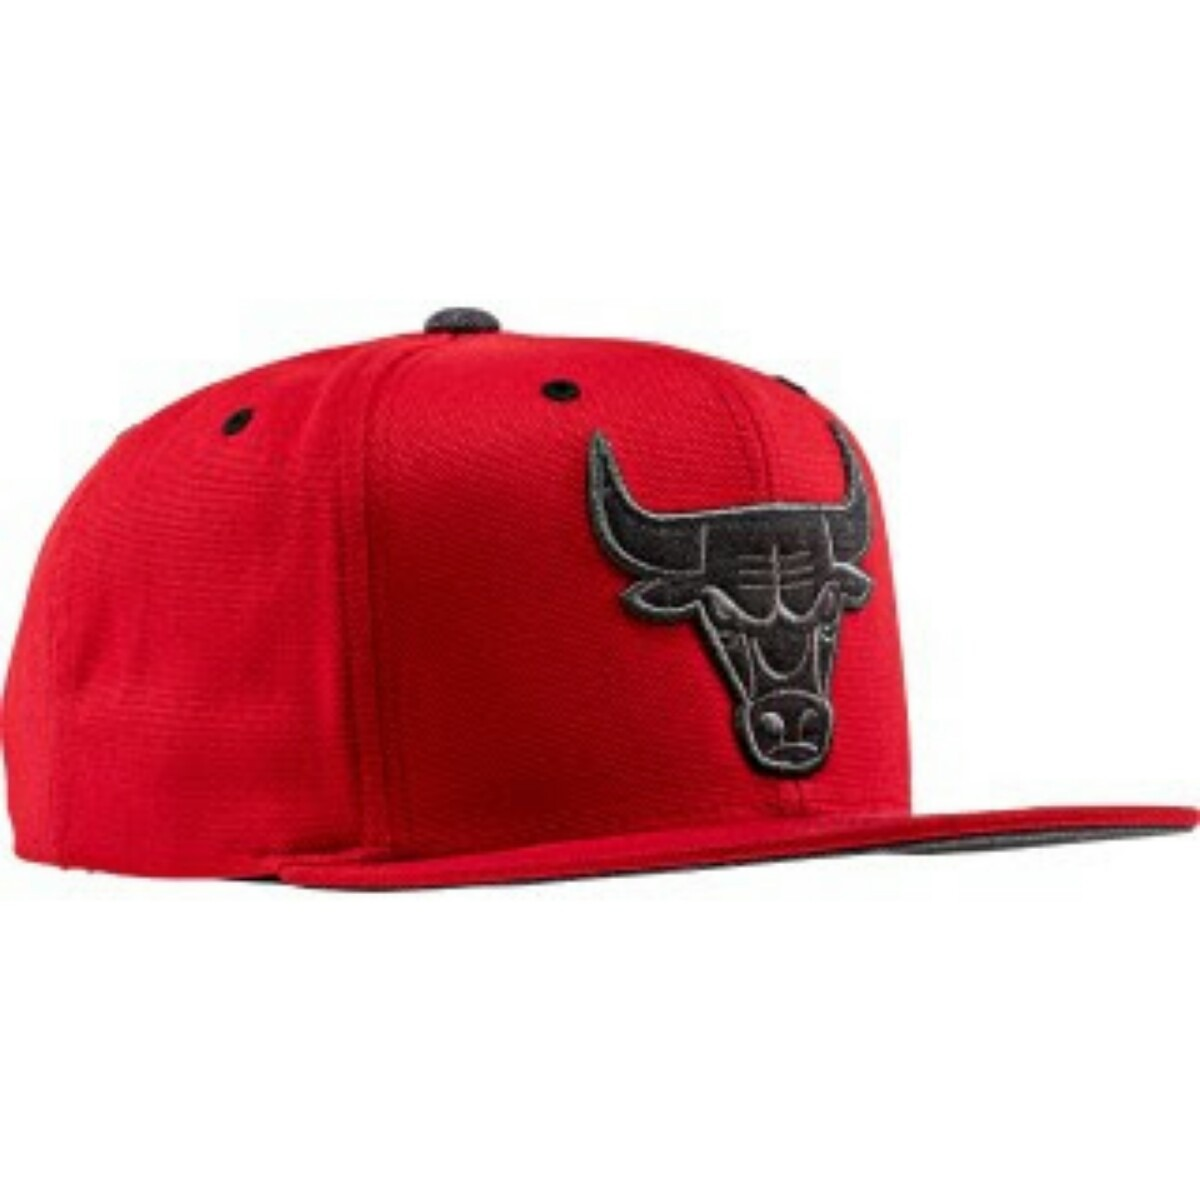 gorras chicago bulls snapback 7cd4a0279d7